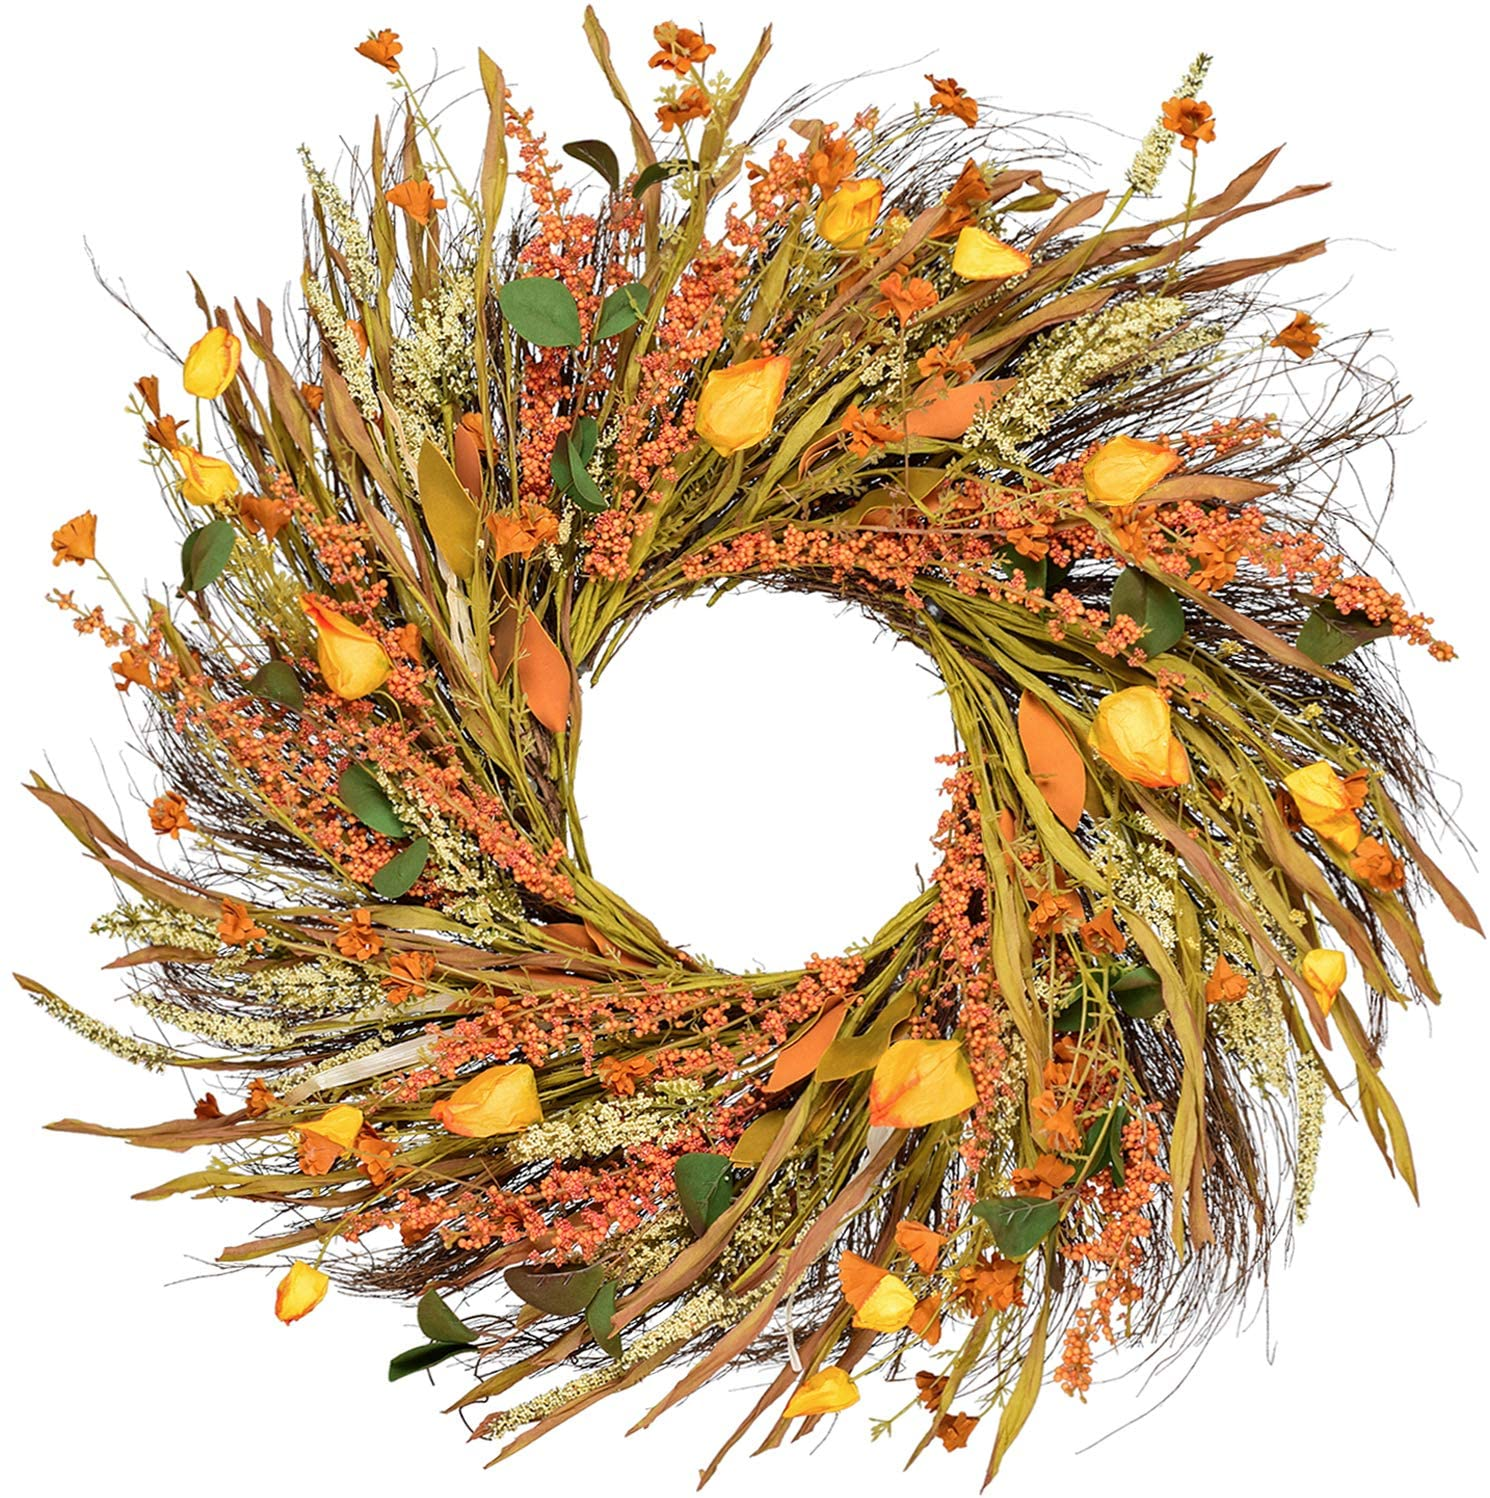 DearHouse 22 inch Fall Wreath Front Door Wreath Grain Wreath Harvest Gold Wheat Ears Circle Garland Autumn Wreath for Front Door Wedding Wall Home Thanksgiving Decor